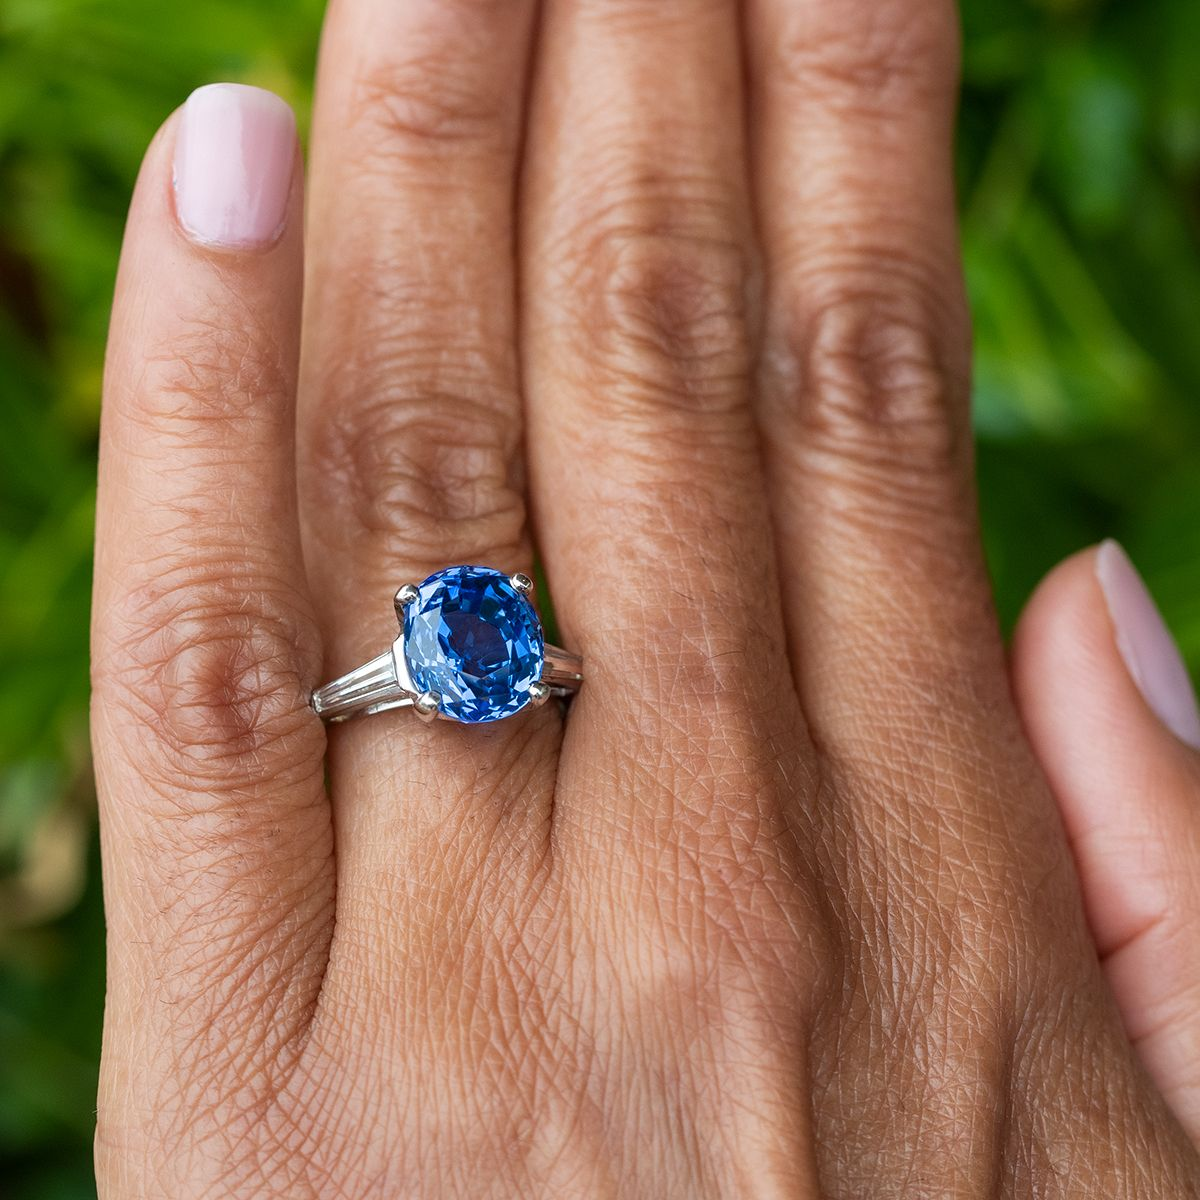 Blue Sapphire Ring Stunning 5 Carat W Tapered Baguette Diamonds In 2020 Engagement Rings Sapphire Sapphire Engagement Ring Blue Amethyst Jewelry